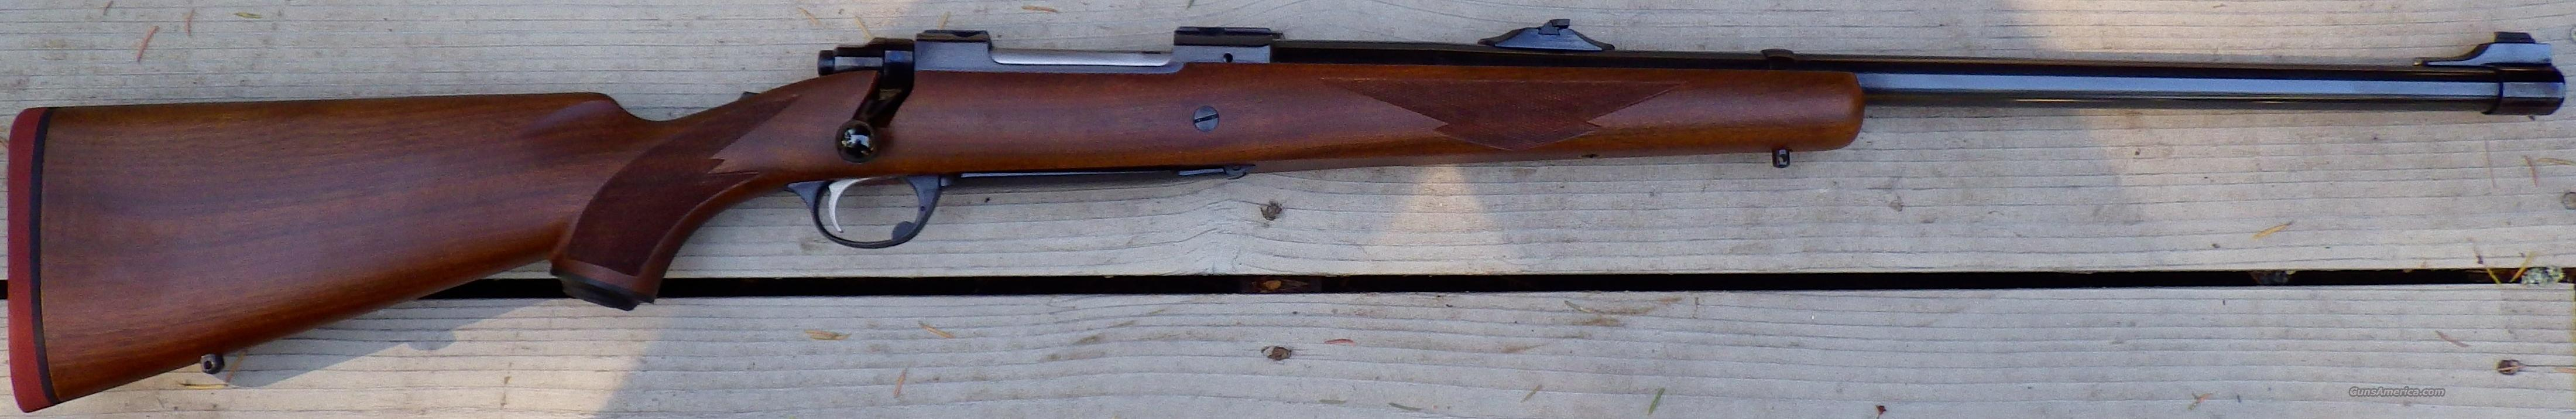 Ruger 77 .458 Win. Mag., tang safety, NIB  Guns > Rifles > Ruger Rifles > Model 77